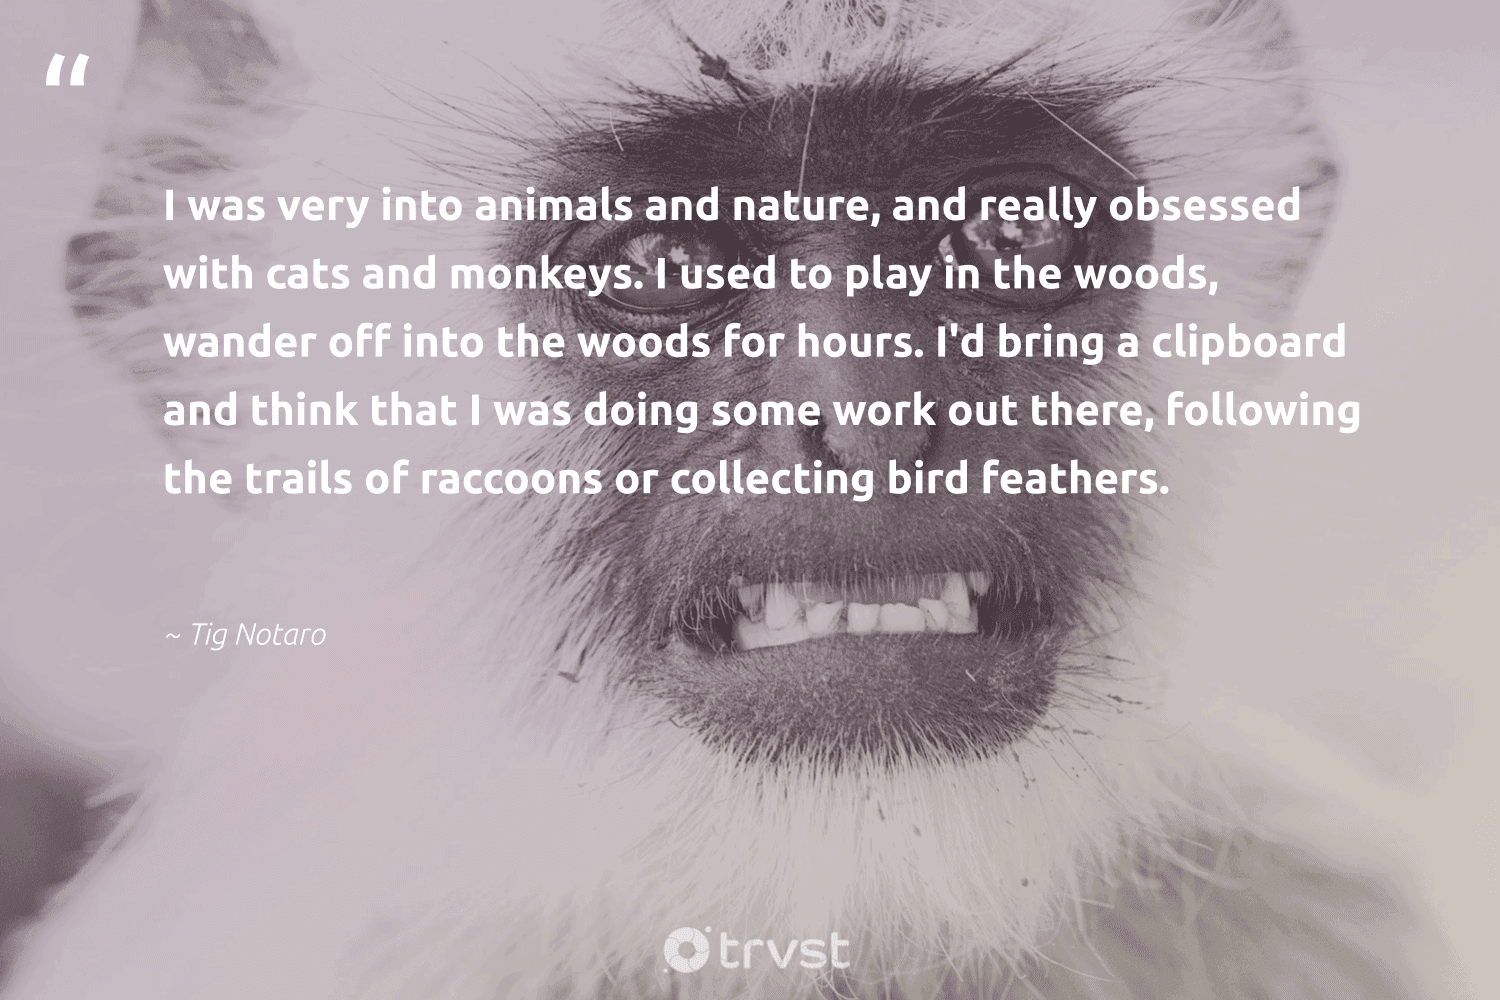 """""""I was very into animals and nature, and really obsessed with cats and monkeys. I used to play in the woods, wander off into the woods for hours. I'd bring a clipboard and think that I was doing some work out there, following the trails of raccoons or collecting bird feathers.""""  - Tig Notaro #trvst #quotes #nature #bird #animals #feathers #monkeys #environment #amazingworld #sustainability #socialchange #planet"""